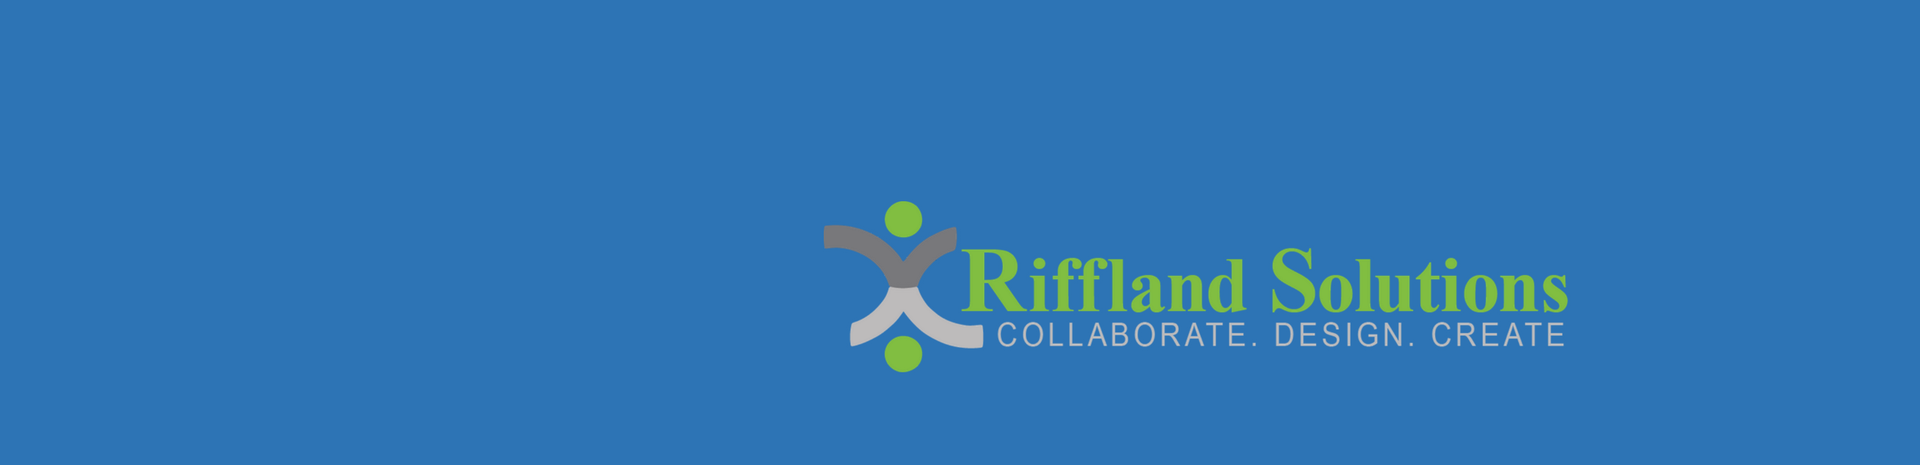 Riffland Solutions (2) 1920x465 (1)